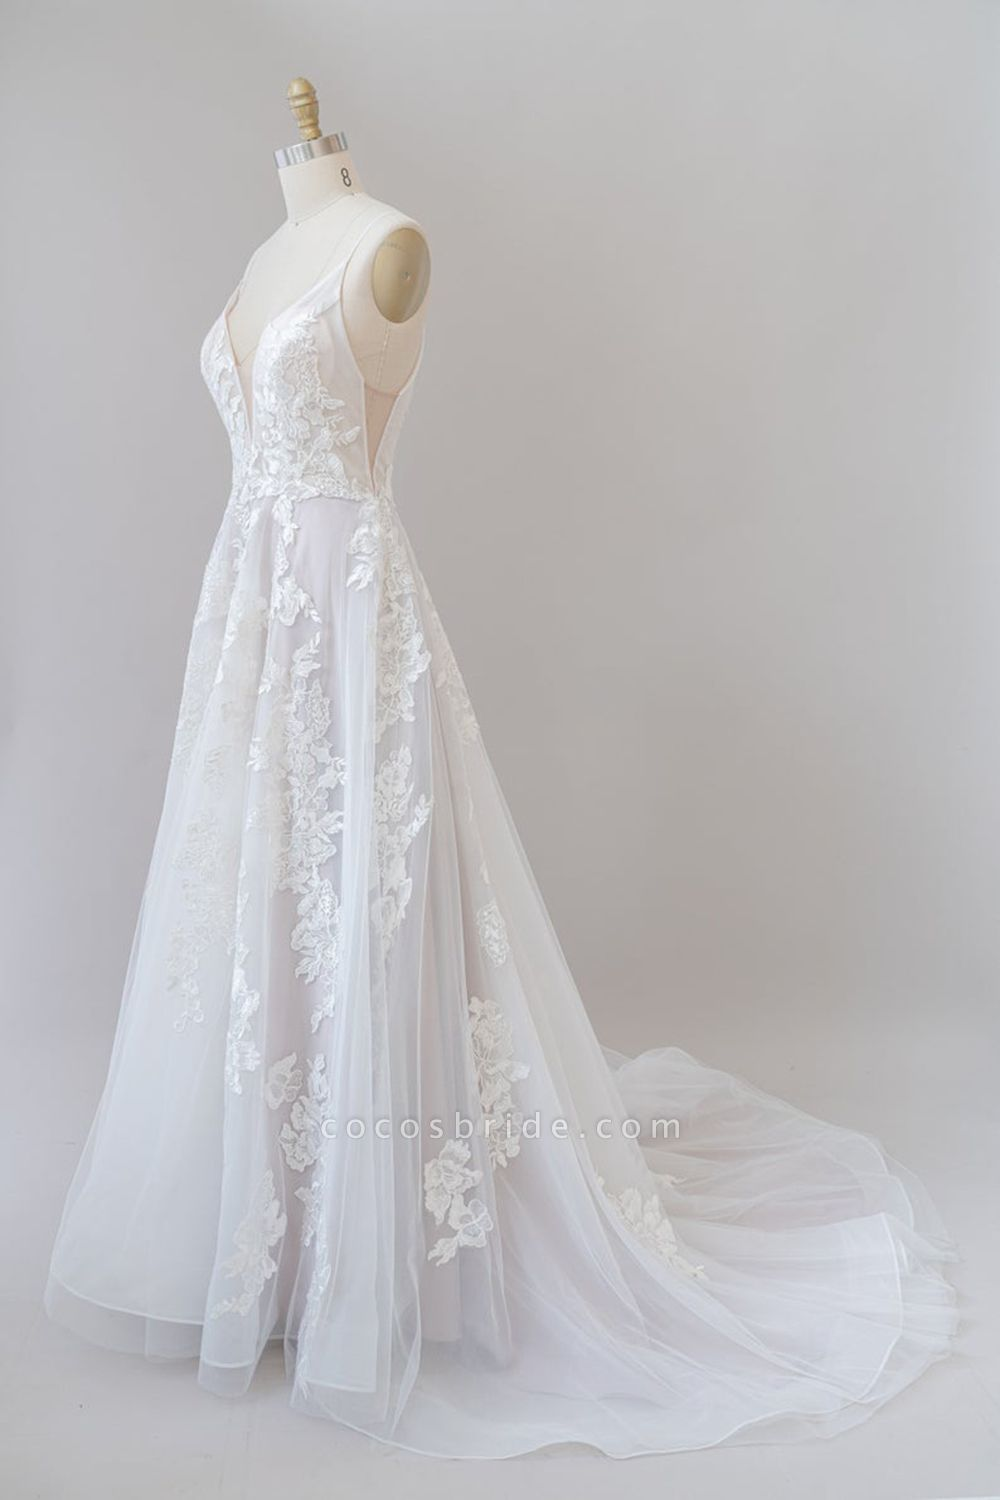 SD1959 Spaghetti Strap Lace Appliques Tulle Wedding Dress